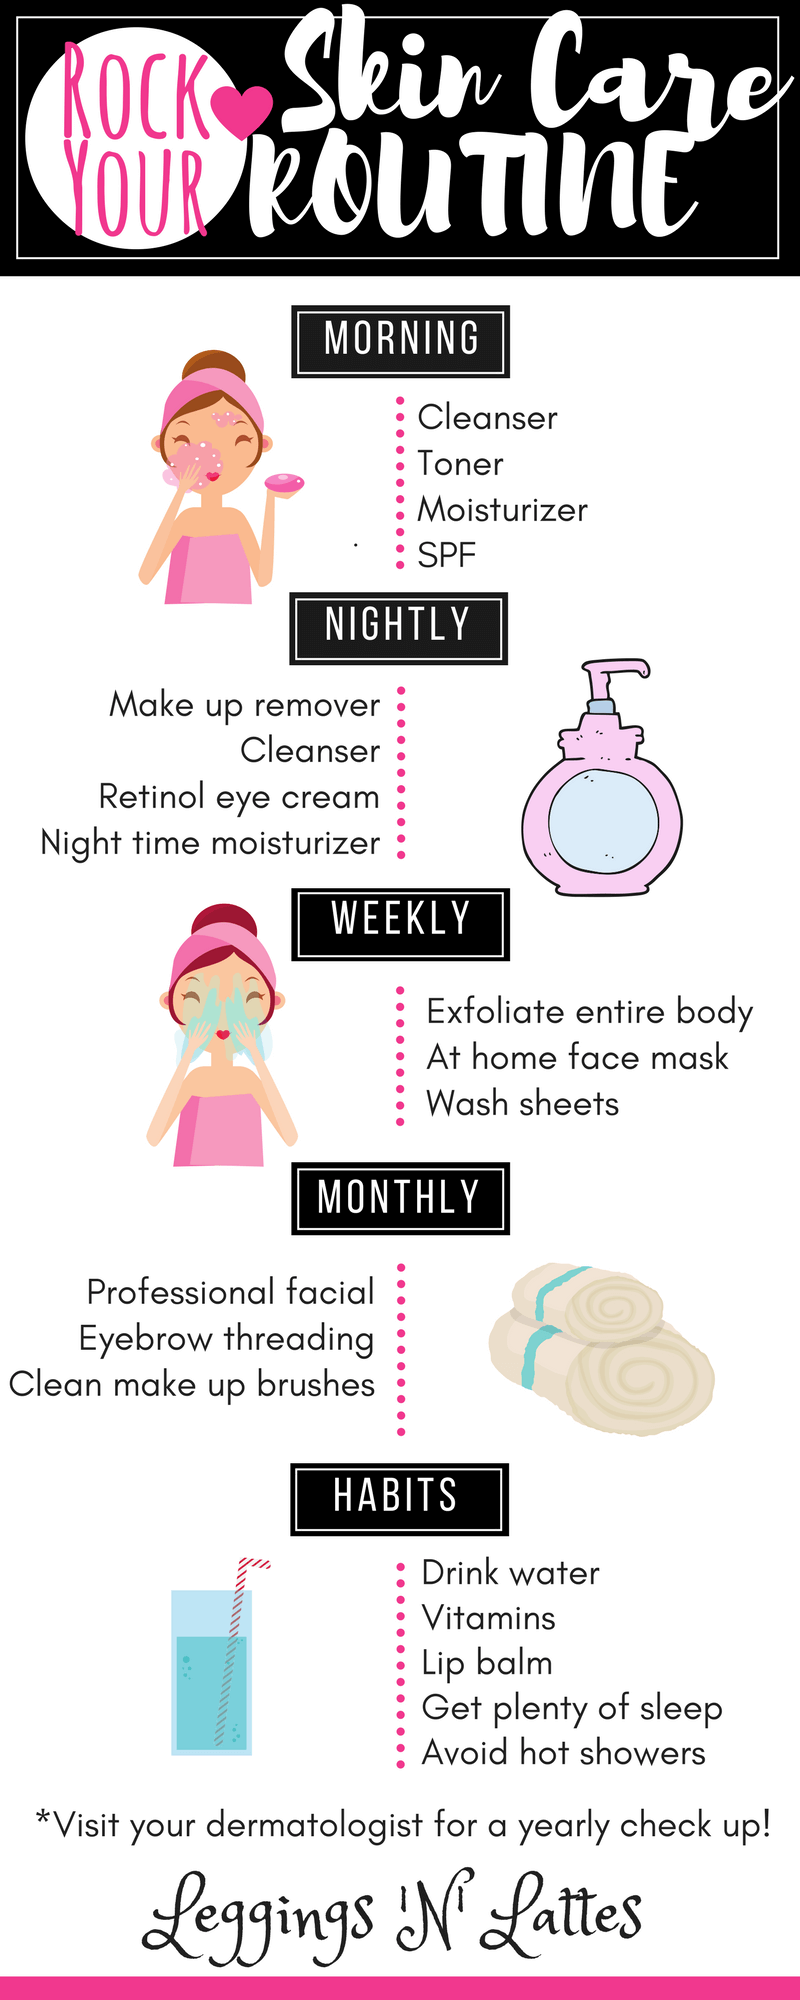 This Sounds So Helpful Definitely Trying This I Ll Tell U How It Goes X How Does It Work For U X Beauty Tips For Women Skin Care Advices Skin Care